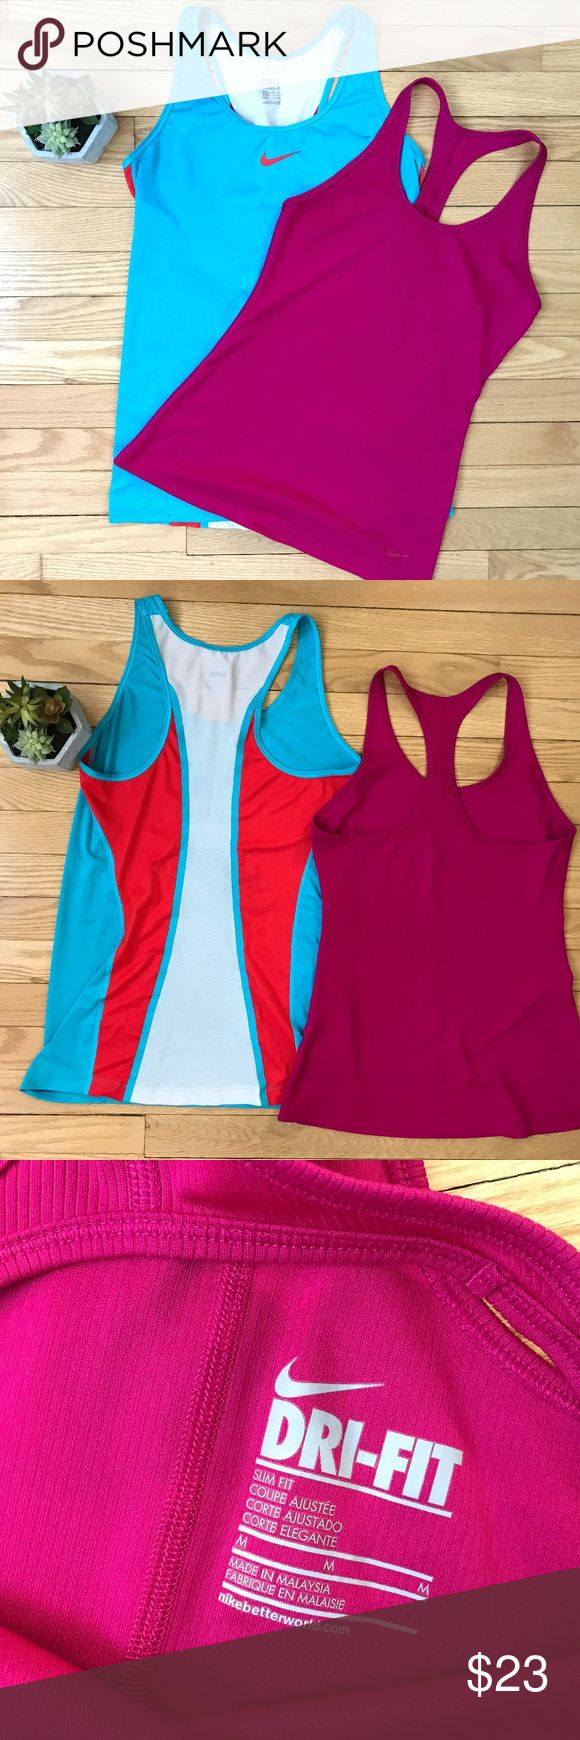 Nike Tank Ladies Dri-Fit Bundle (2) Blue & Red Med Bundle of 2 very nice nike DriFit Tanks, the red/maroon one is bit more fitted style, while the blue is a straighter fit. Very nice condition, no flaws! No trades, no PP or otherwise-Happy Shopping! Nike Tops Tank Tops